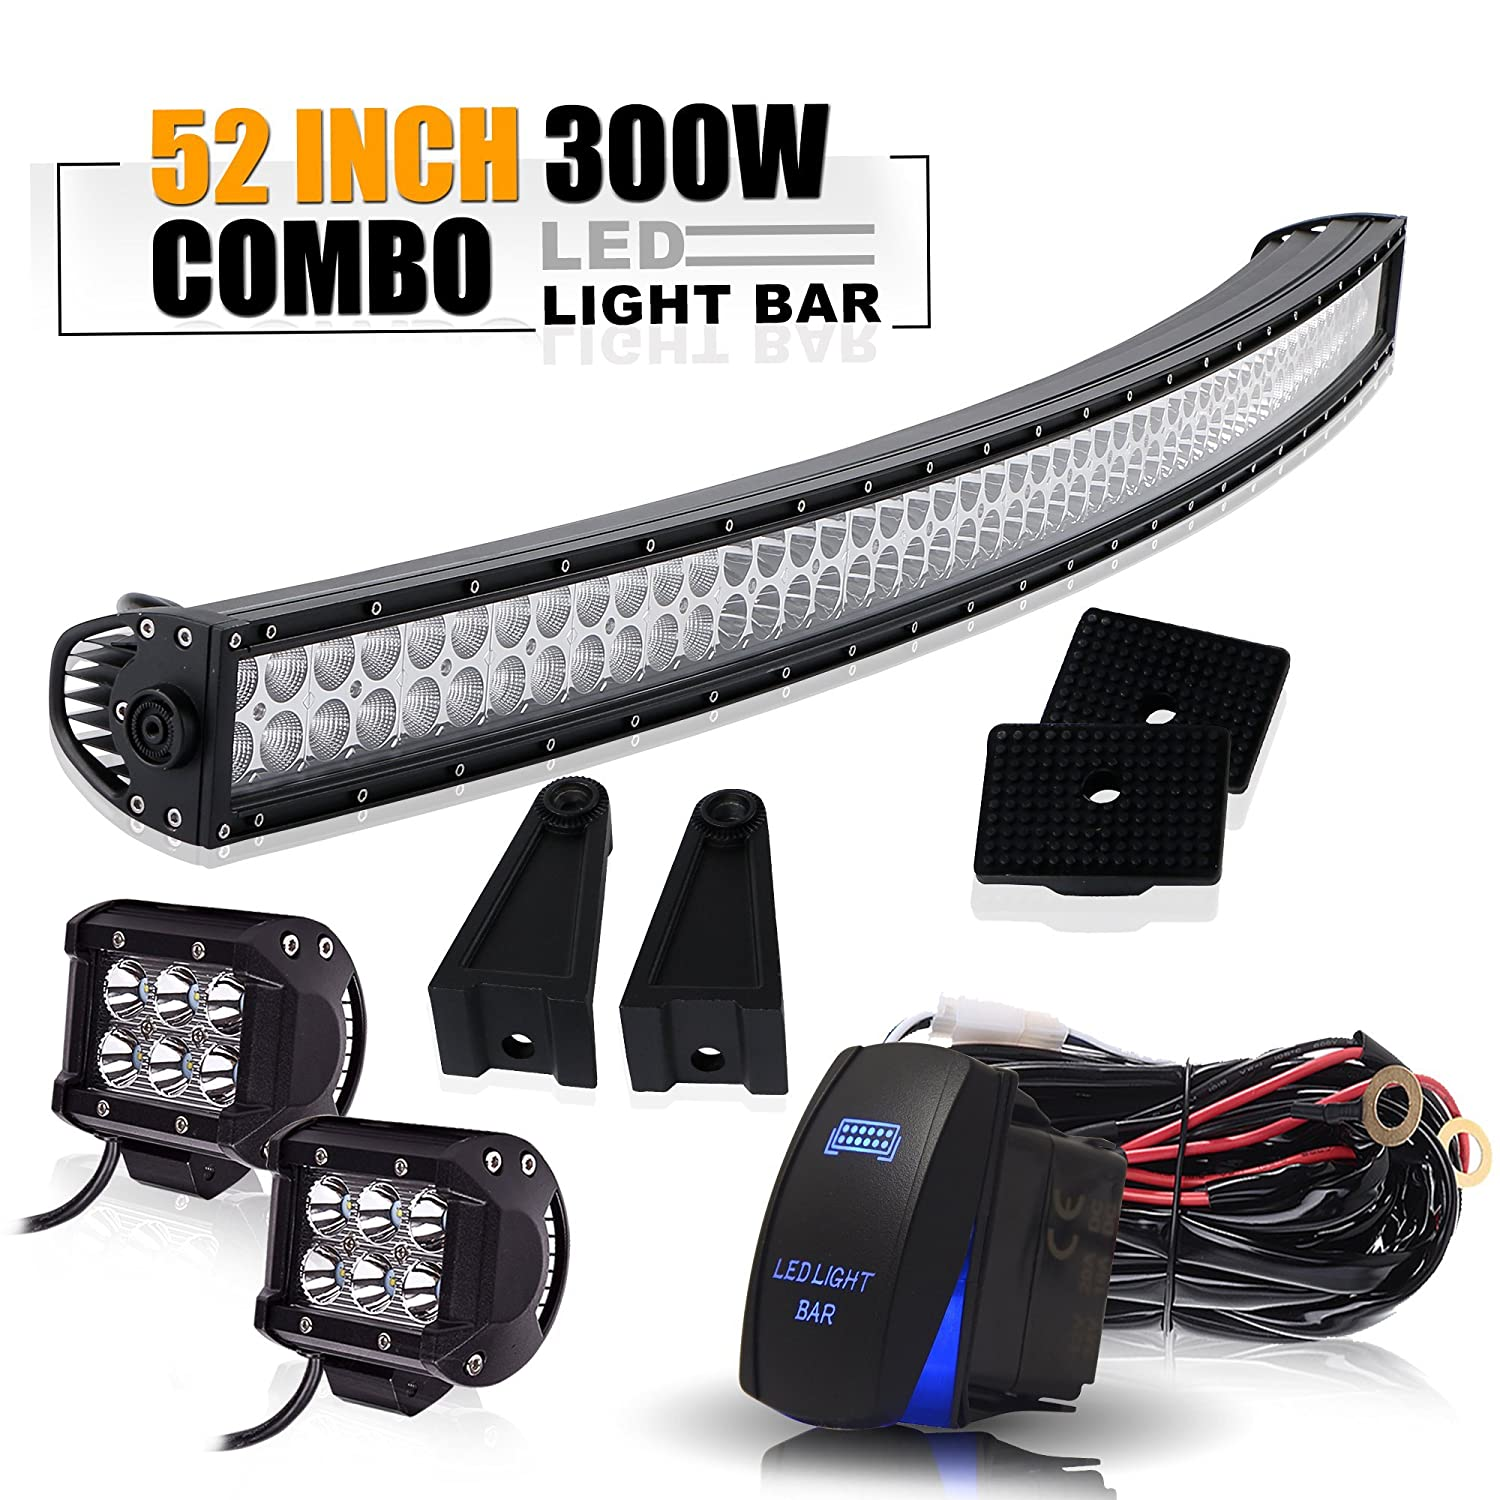 52' 300W Spot Flood Combo Offroad Curved Led Light Bar W/ 4In Pods Cube Led Fog Driving Lamp On Roof Top Front Bumper Grill Windshield For Jeep Wrangler Ford Truck Polaris RZR Boat Tacoma Dodge Ram TURBOSII TUR-CXD-300WCV18W-BTWIR